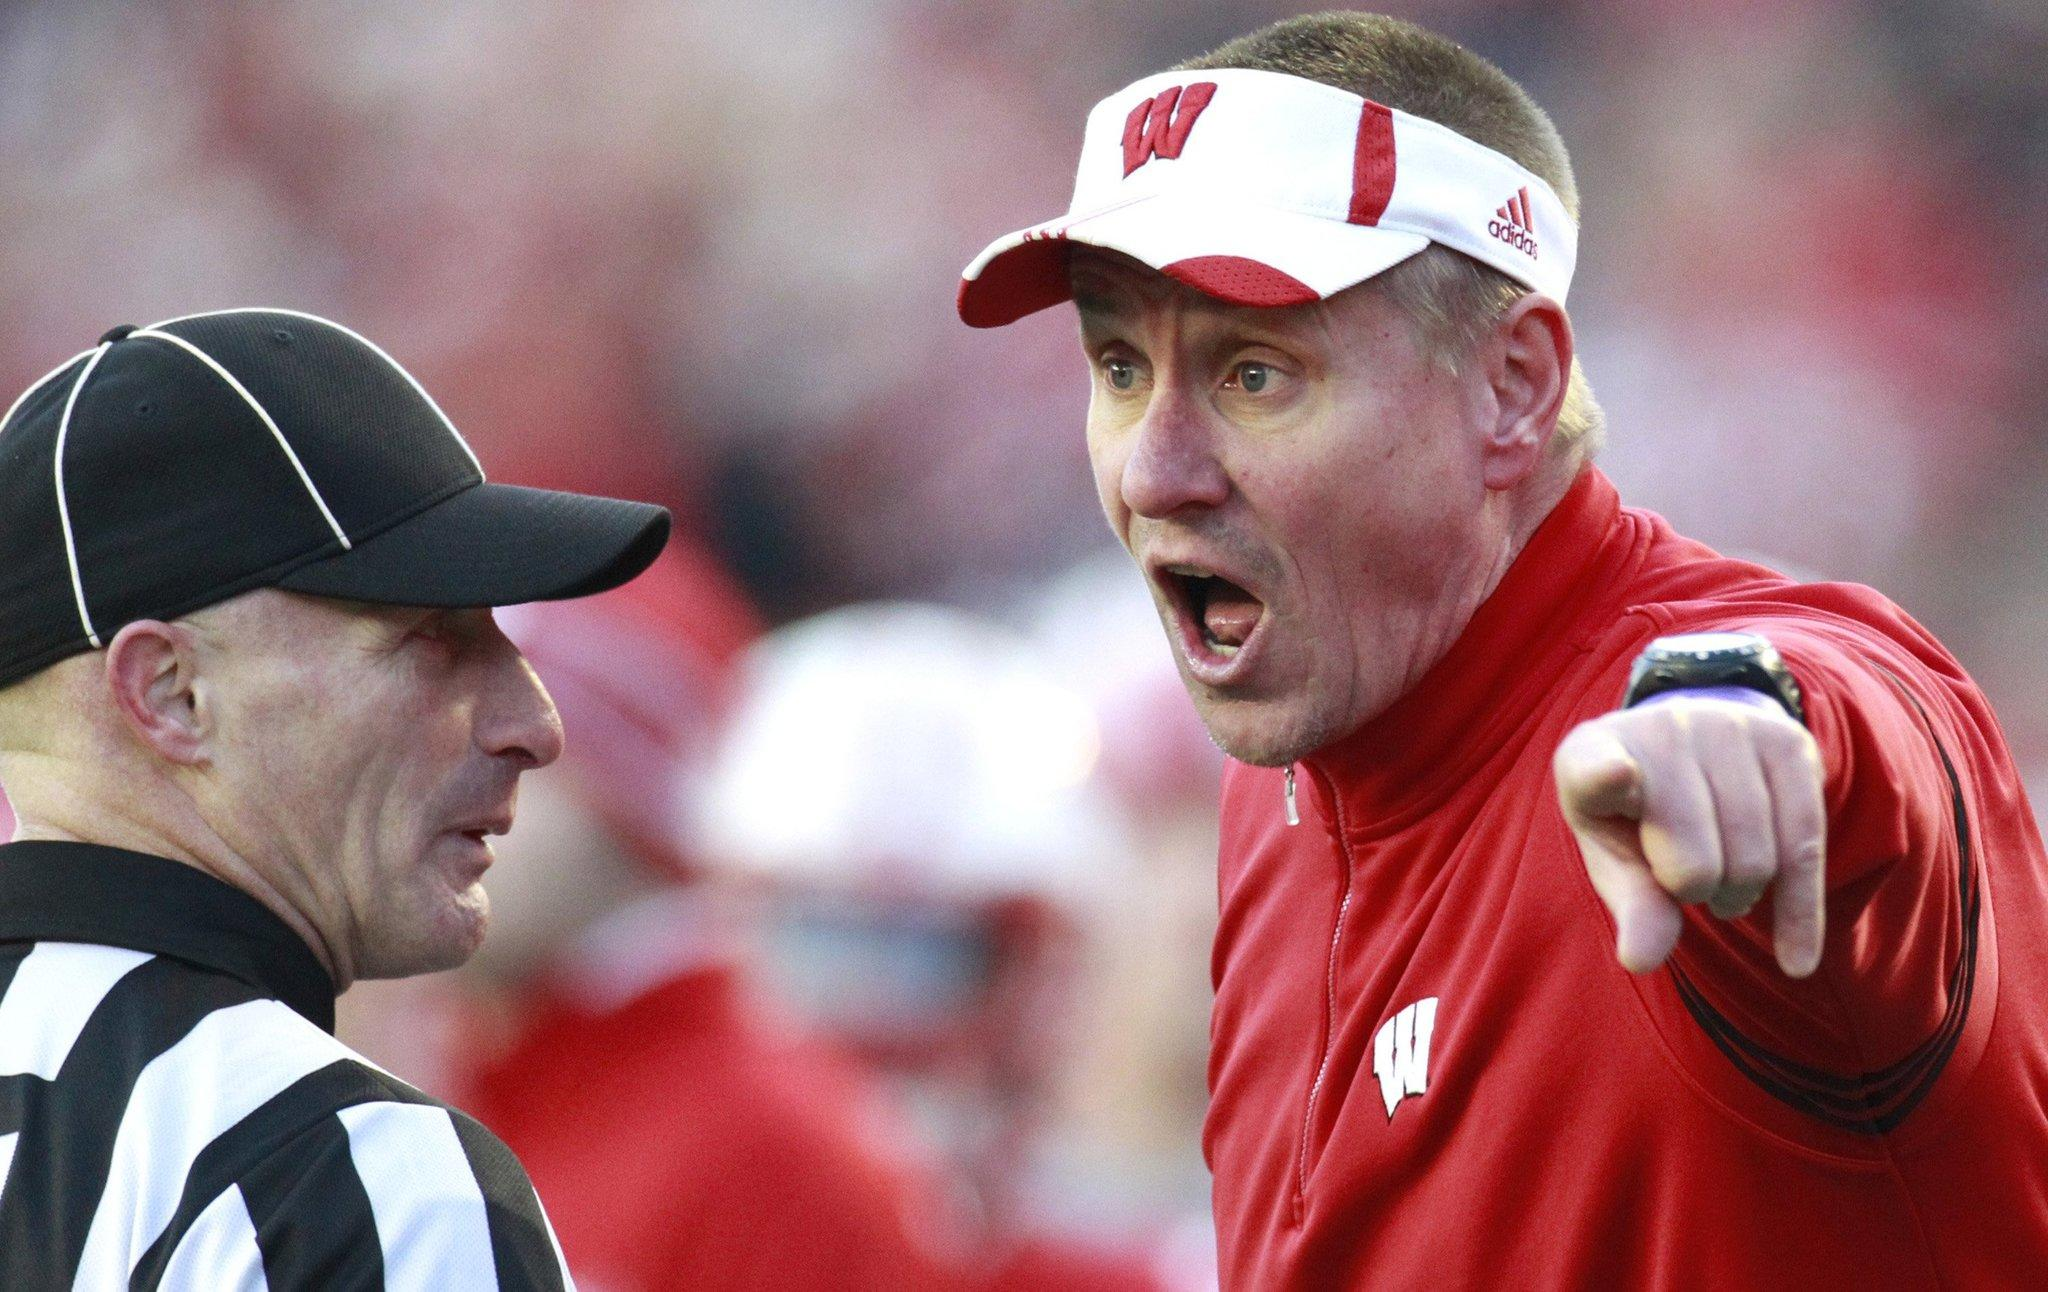 Wisconsin head coach Gary Andersen yells at officials after Penn State scored a touchdown during the second quarter on Saturday, Nov. 30, 2013, at Camp Randall Stadium in Madison, Wis. Penn State prevailed, 31-24.